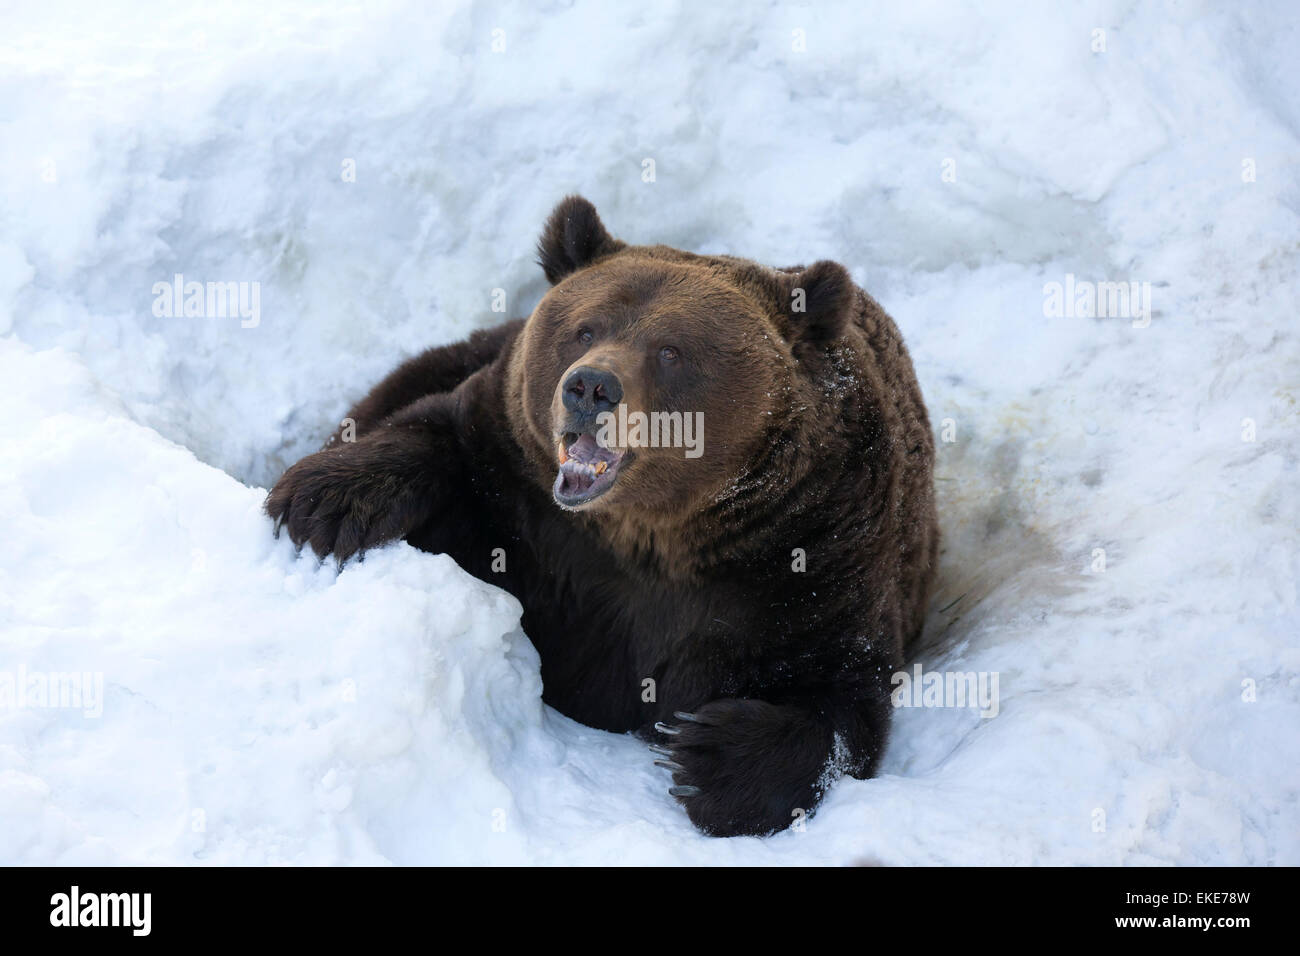 Grizzly bear (Ursus arctos horribilis) emerging from its hole in the snow after hibernation - Stock Image